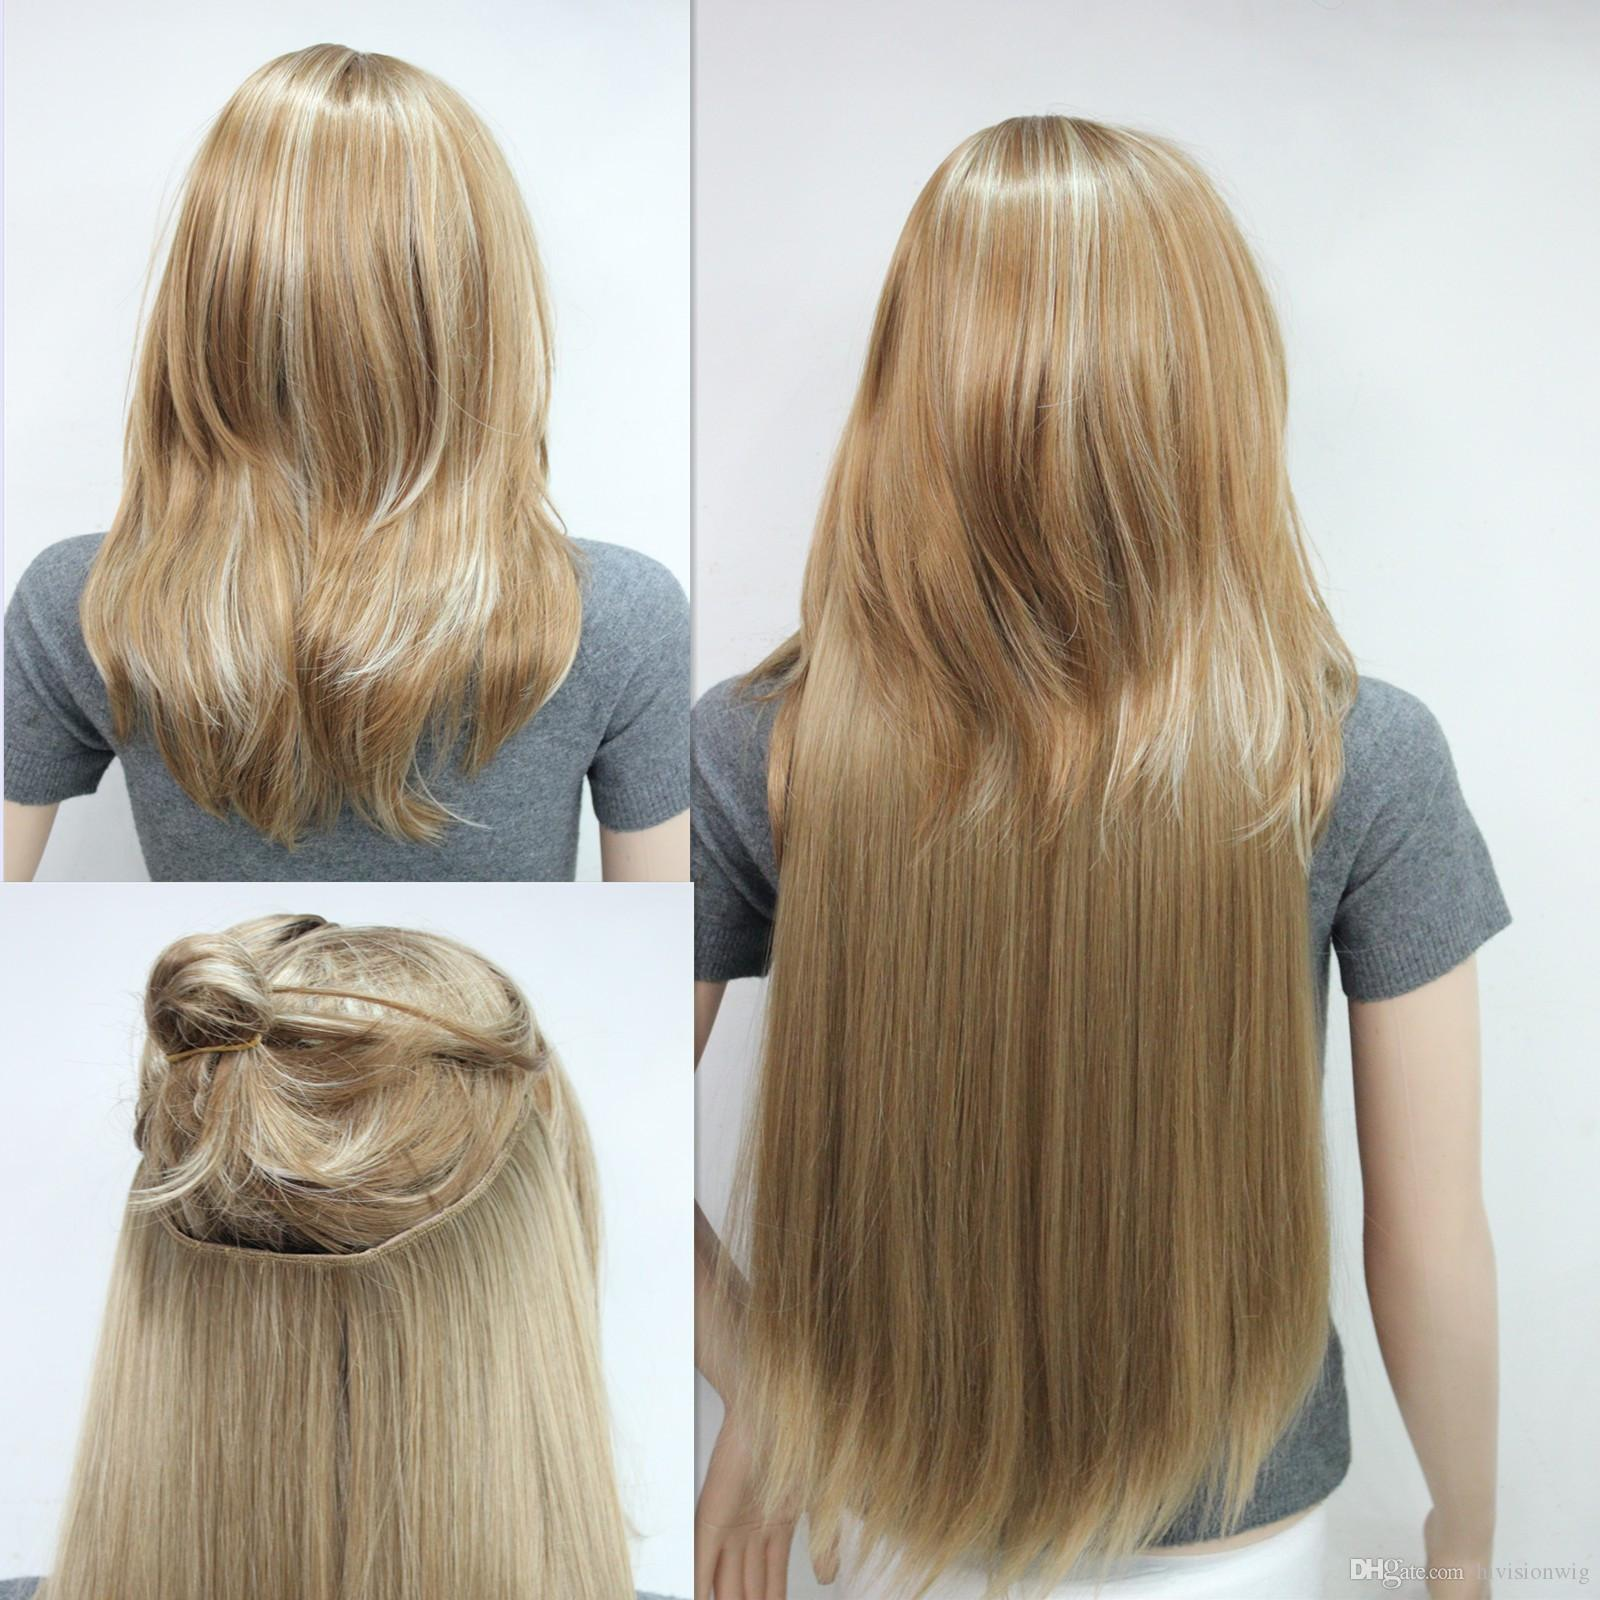 New invisible wire fish line clip in hair extensions straight 1 new invisible wire fish line clip in hair extensions straight 1 piece full head golden reddish blonde 2018 from hivisionwig 1506 dhgate mobile pmusecretfo Image collections